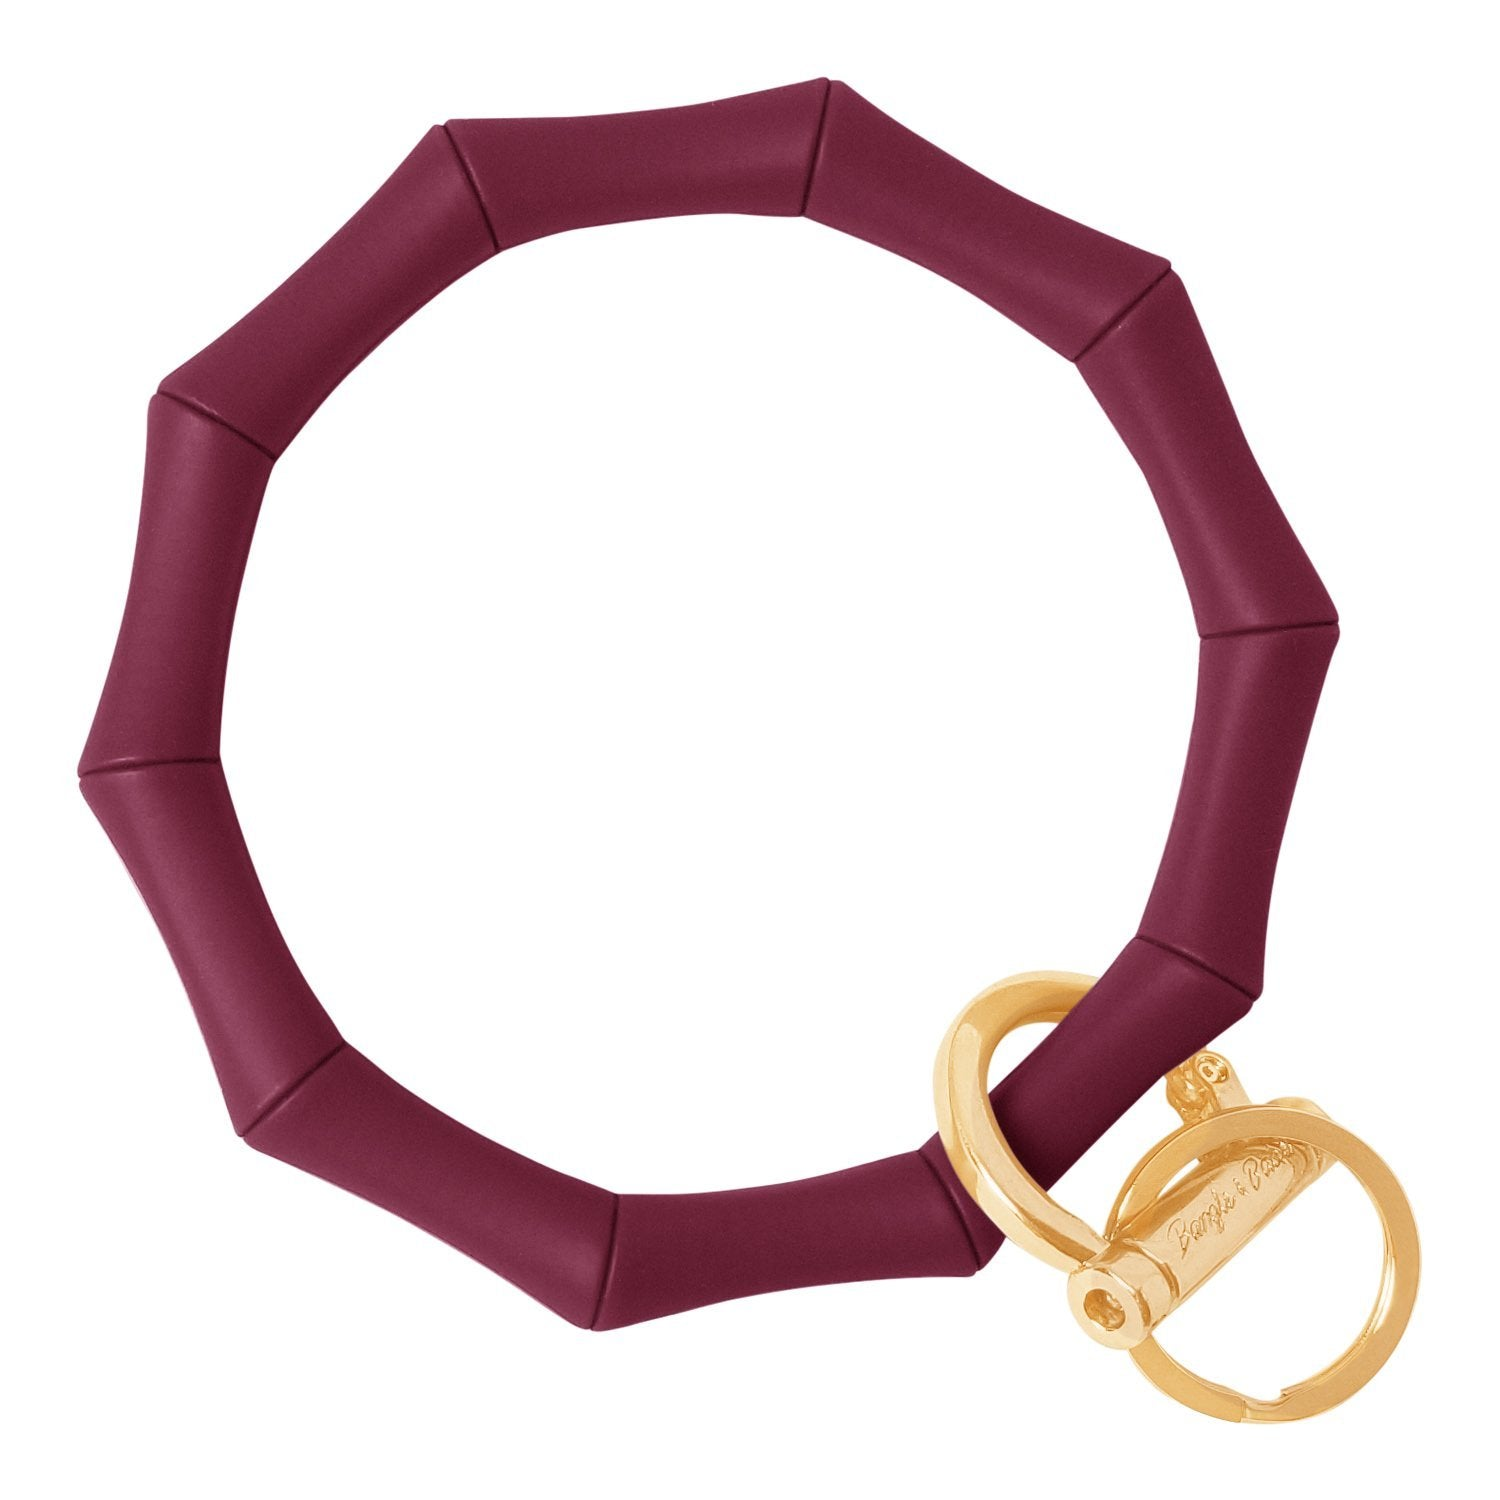 Bamboo Inspired Bangle & Babe Bracelet Key Ring Bamboo – Maroon Gold